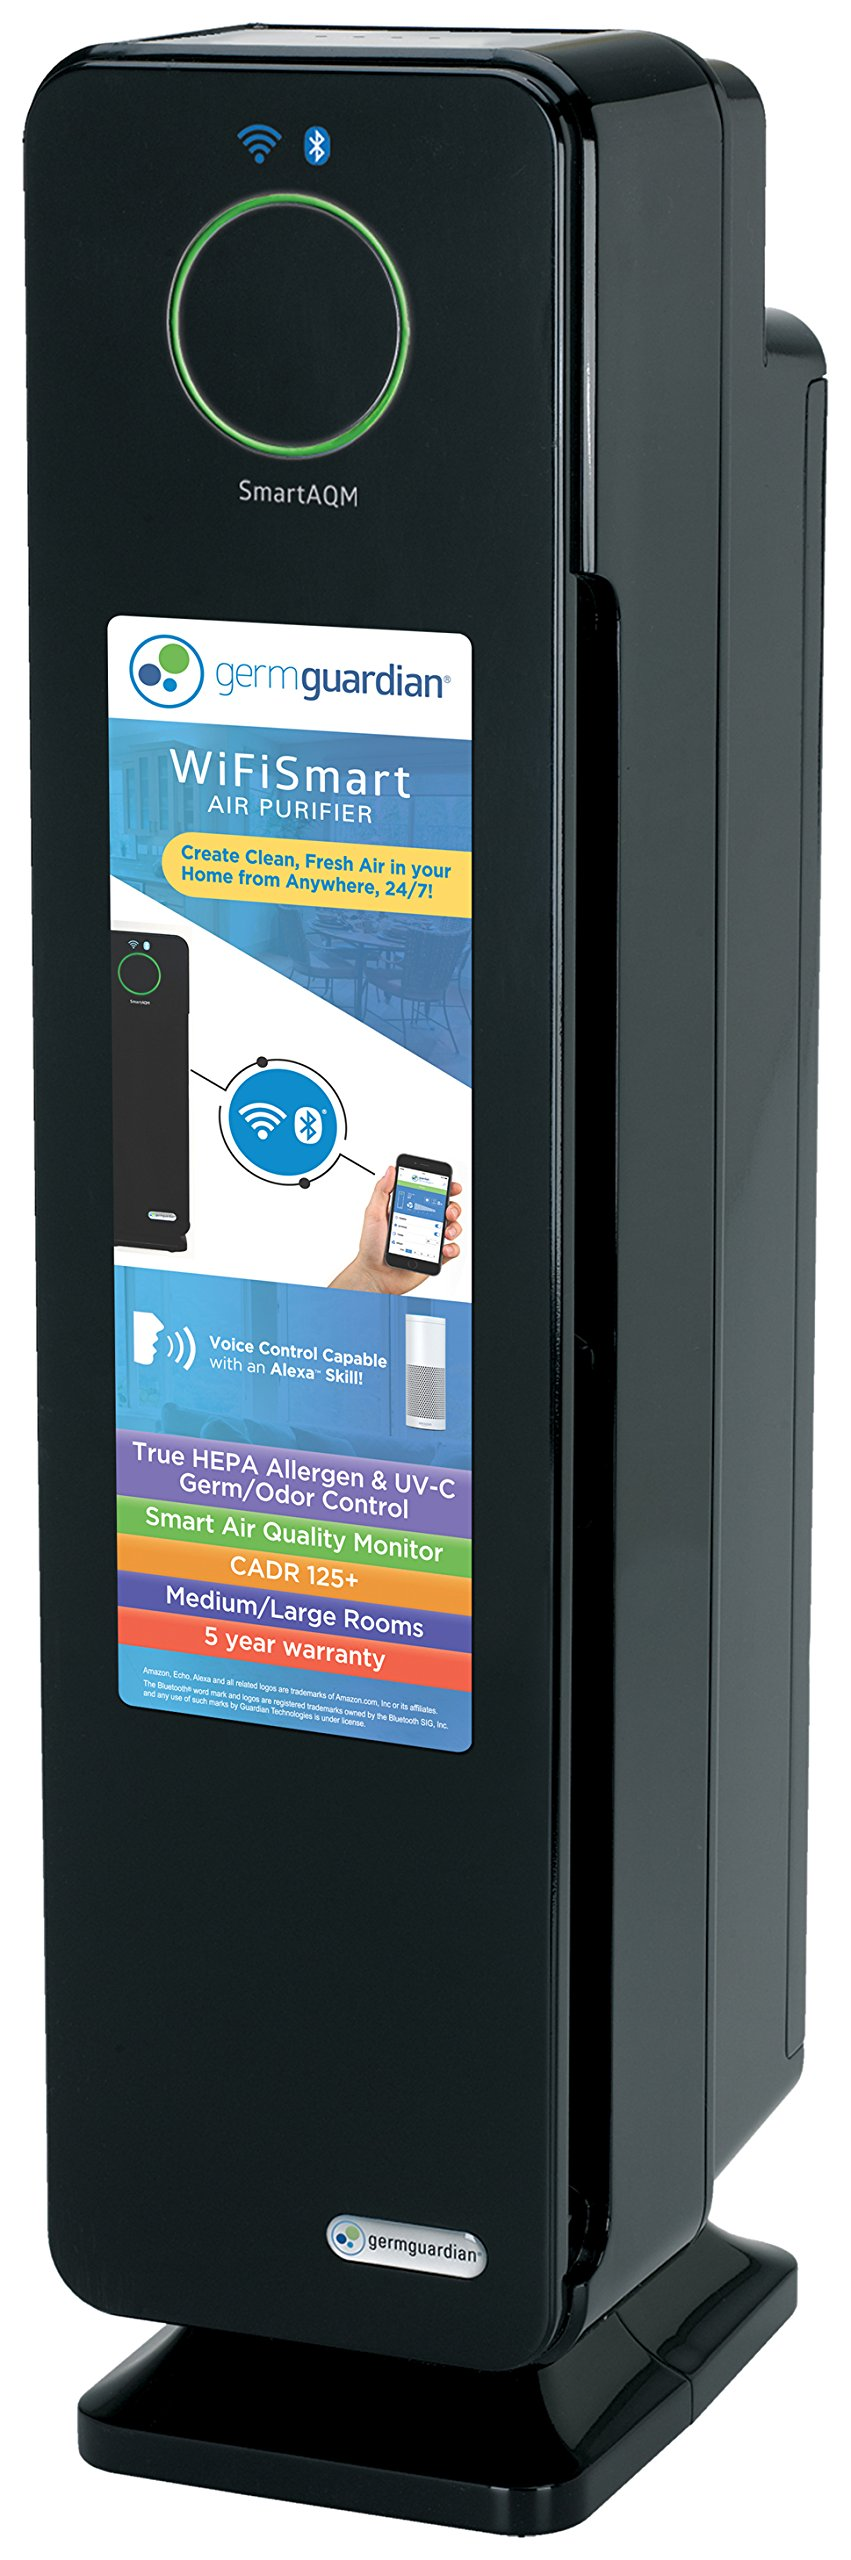 GermGuardian CDAP5500BCA WiFi Smart 4-in-1 Air Purifier, SmartAQM Air Quality Monitor, Voice Control, True HEPA Filter, UV-C Sanitizer, Reduce Allergens & Odors, 28-inch Germ Guardian Air Purifier